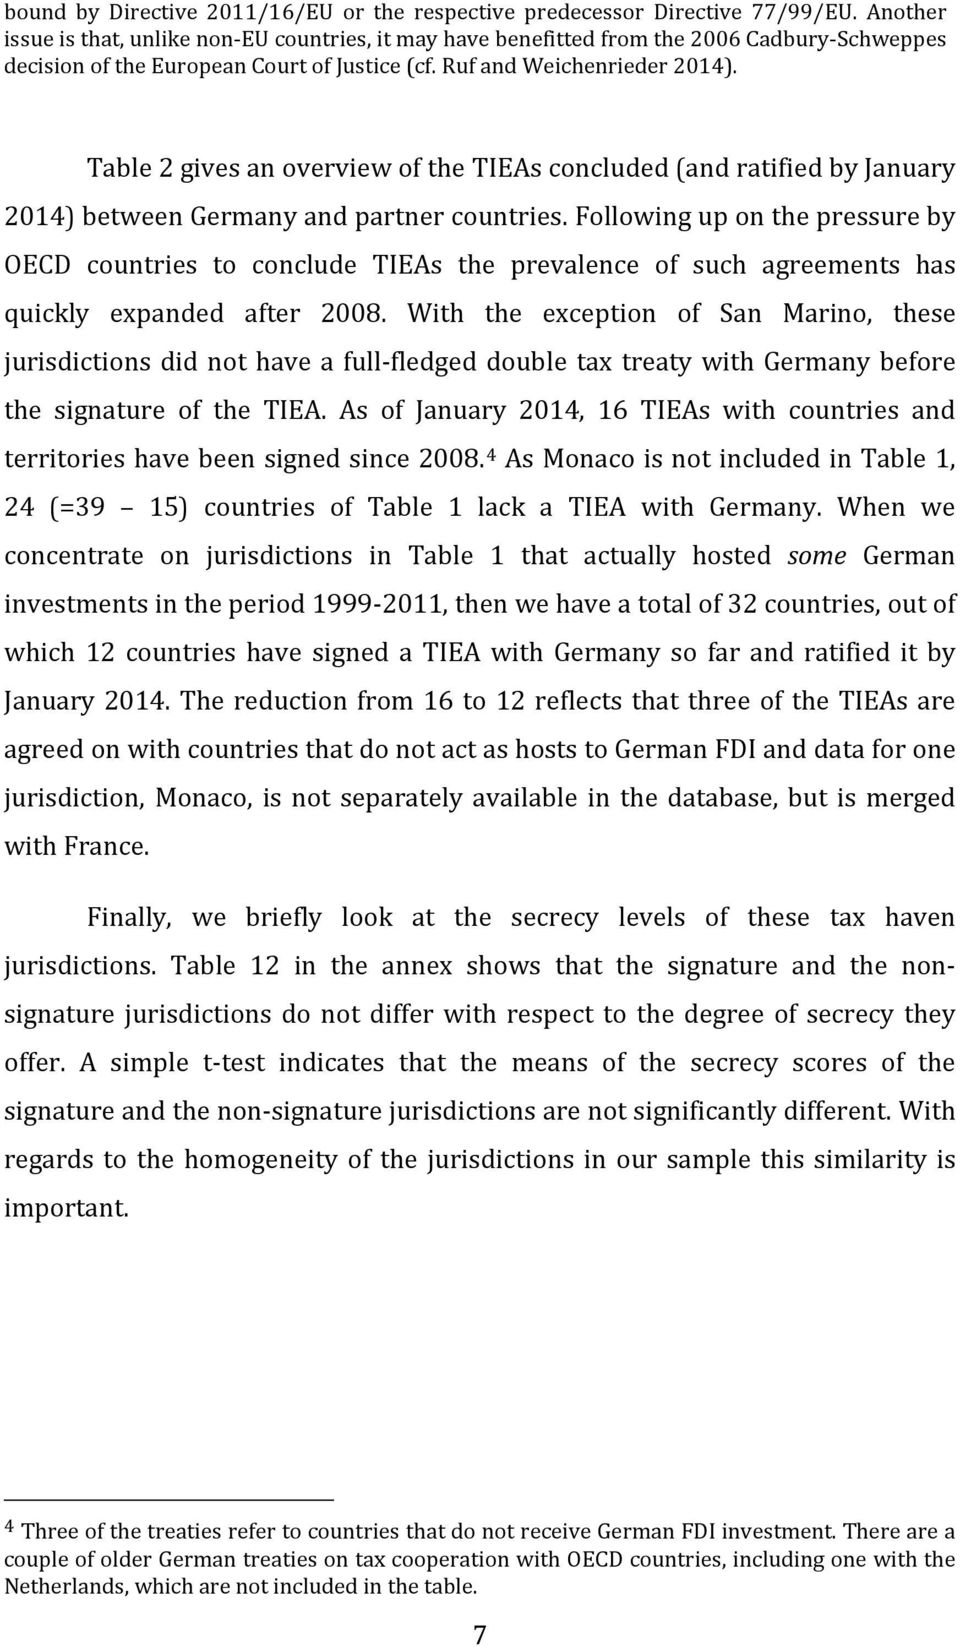 Table 2 gives an overview of the TIEAs concluded (and ratified by January 2014) between Germany and partner countries.